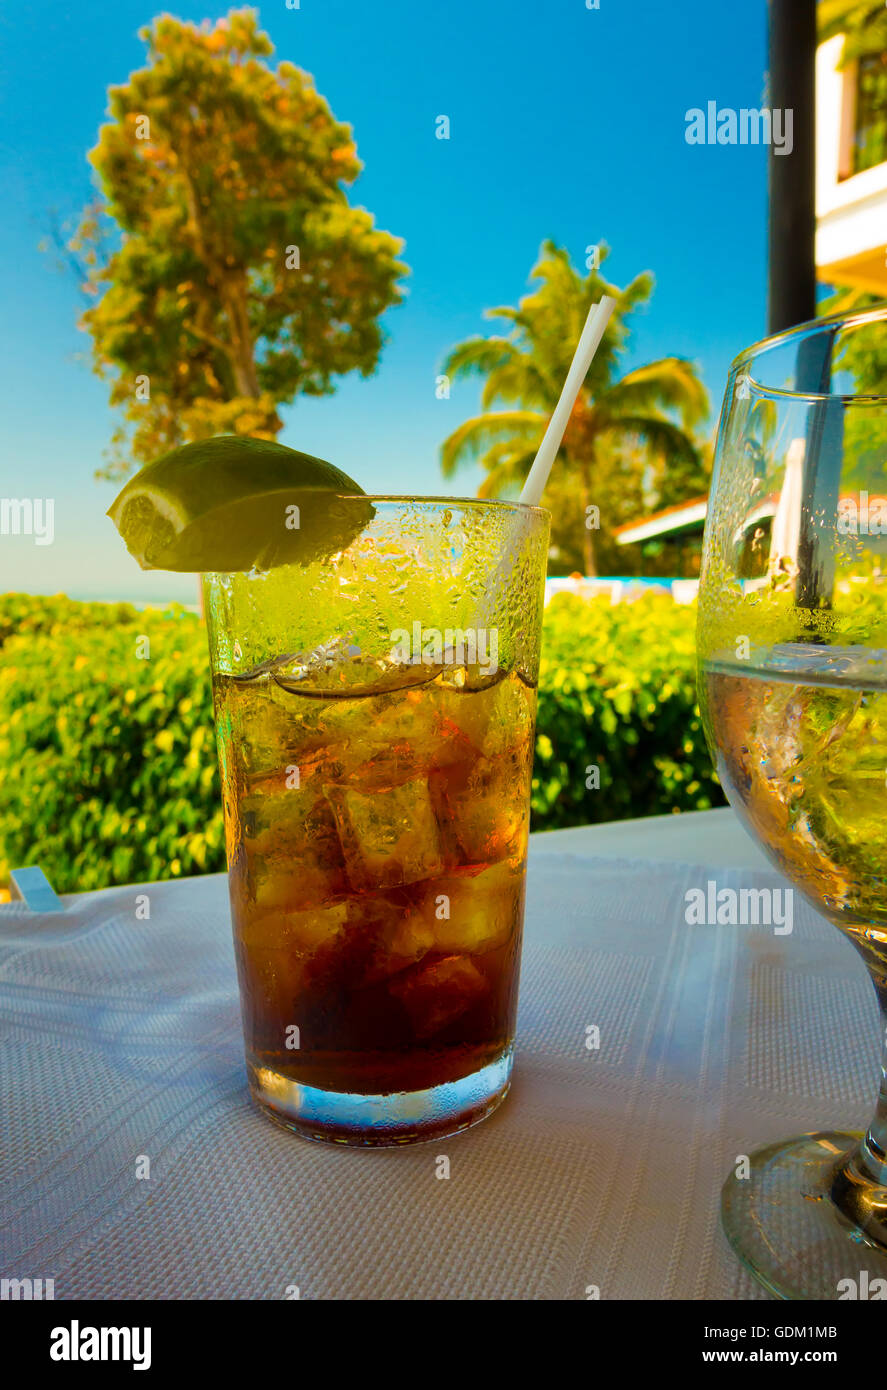 A Cuba Libre (Rum and coke) sitting on a table overlooking a resort. Costa Rica, Central America. - Stock Image